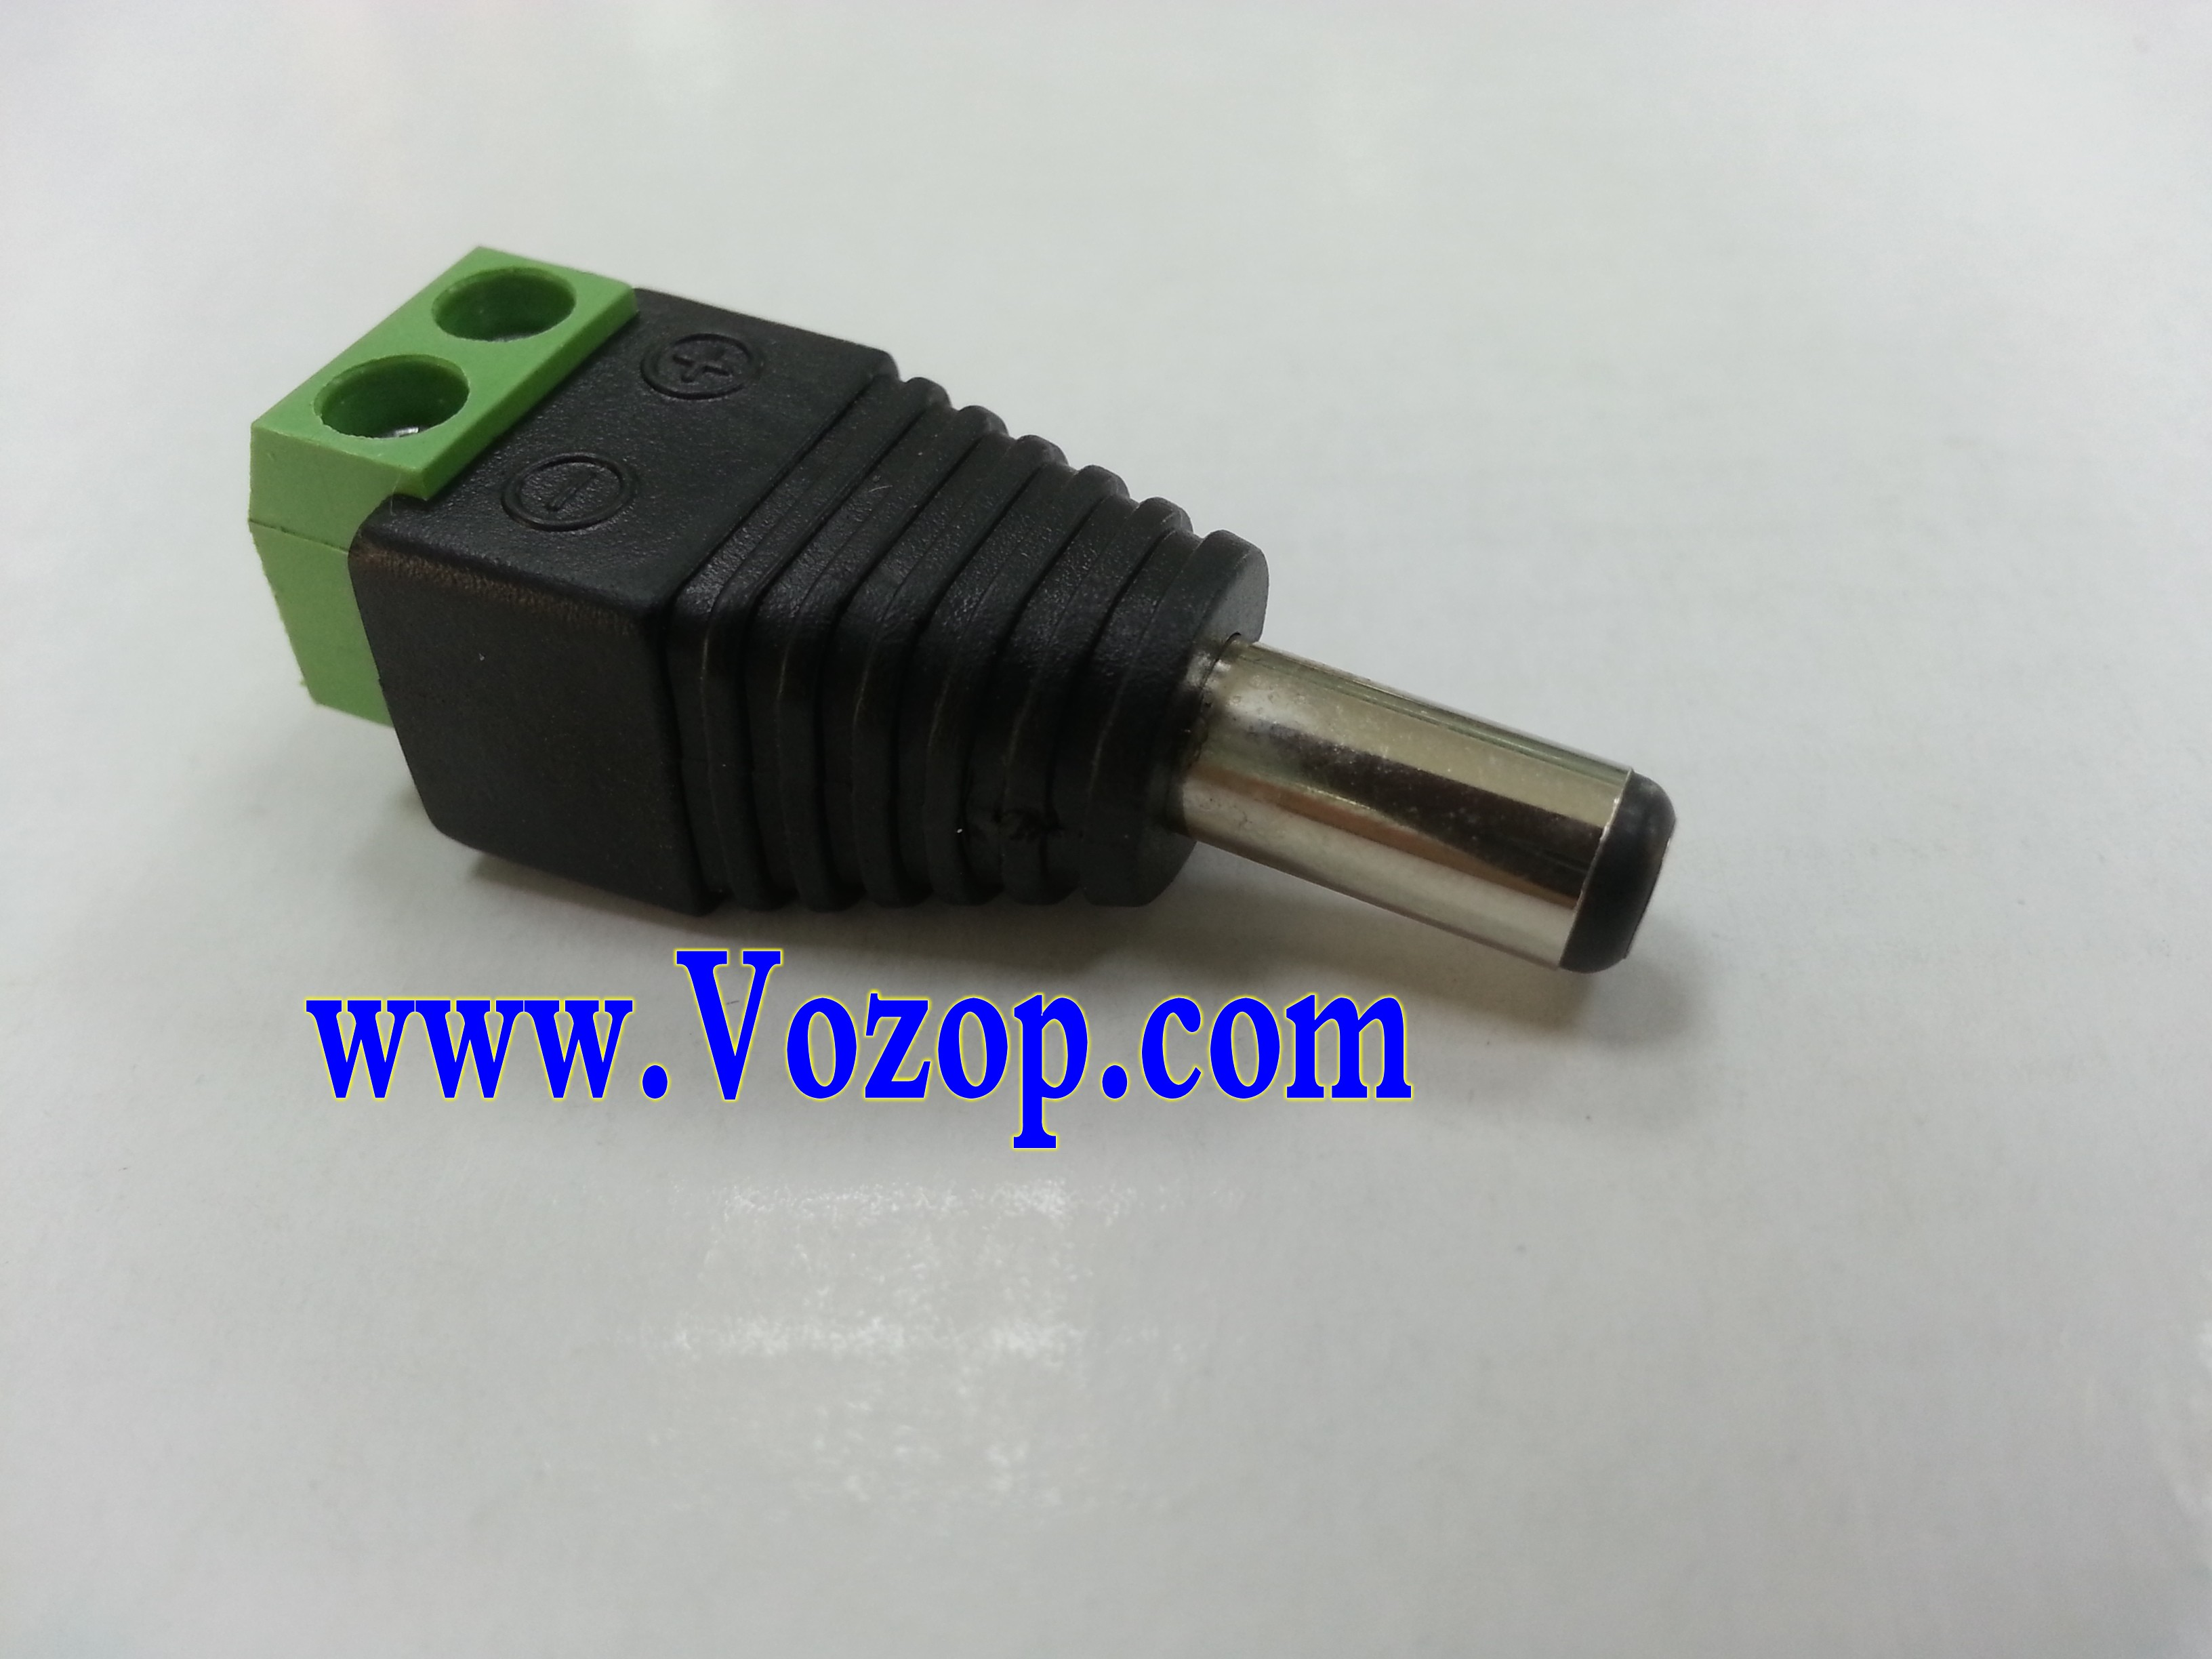 Male_Power_Connector_Screw_Terminal_Barrel_Style_Plugs_supplier